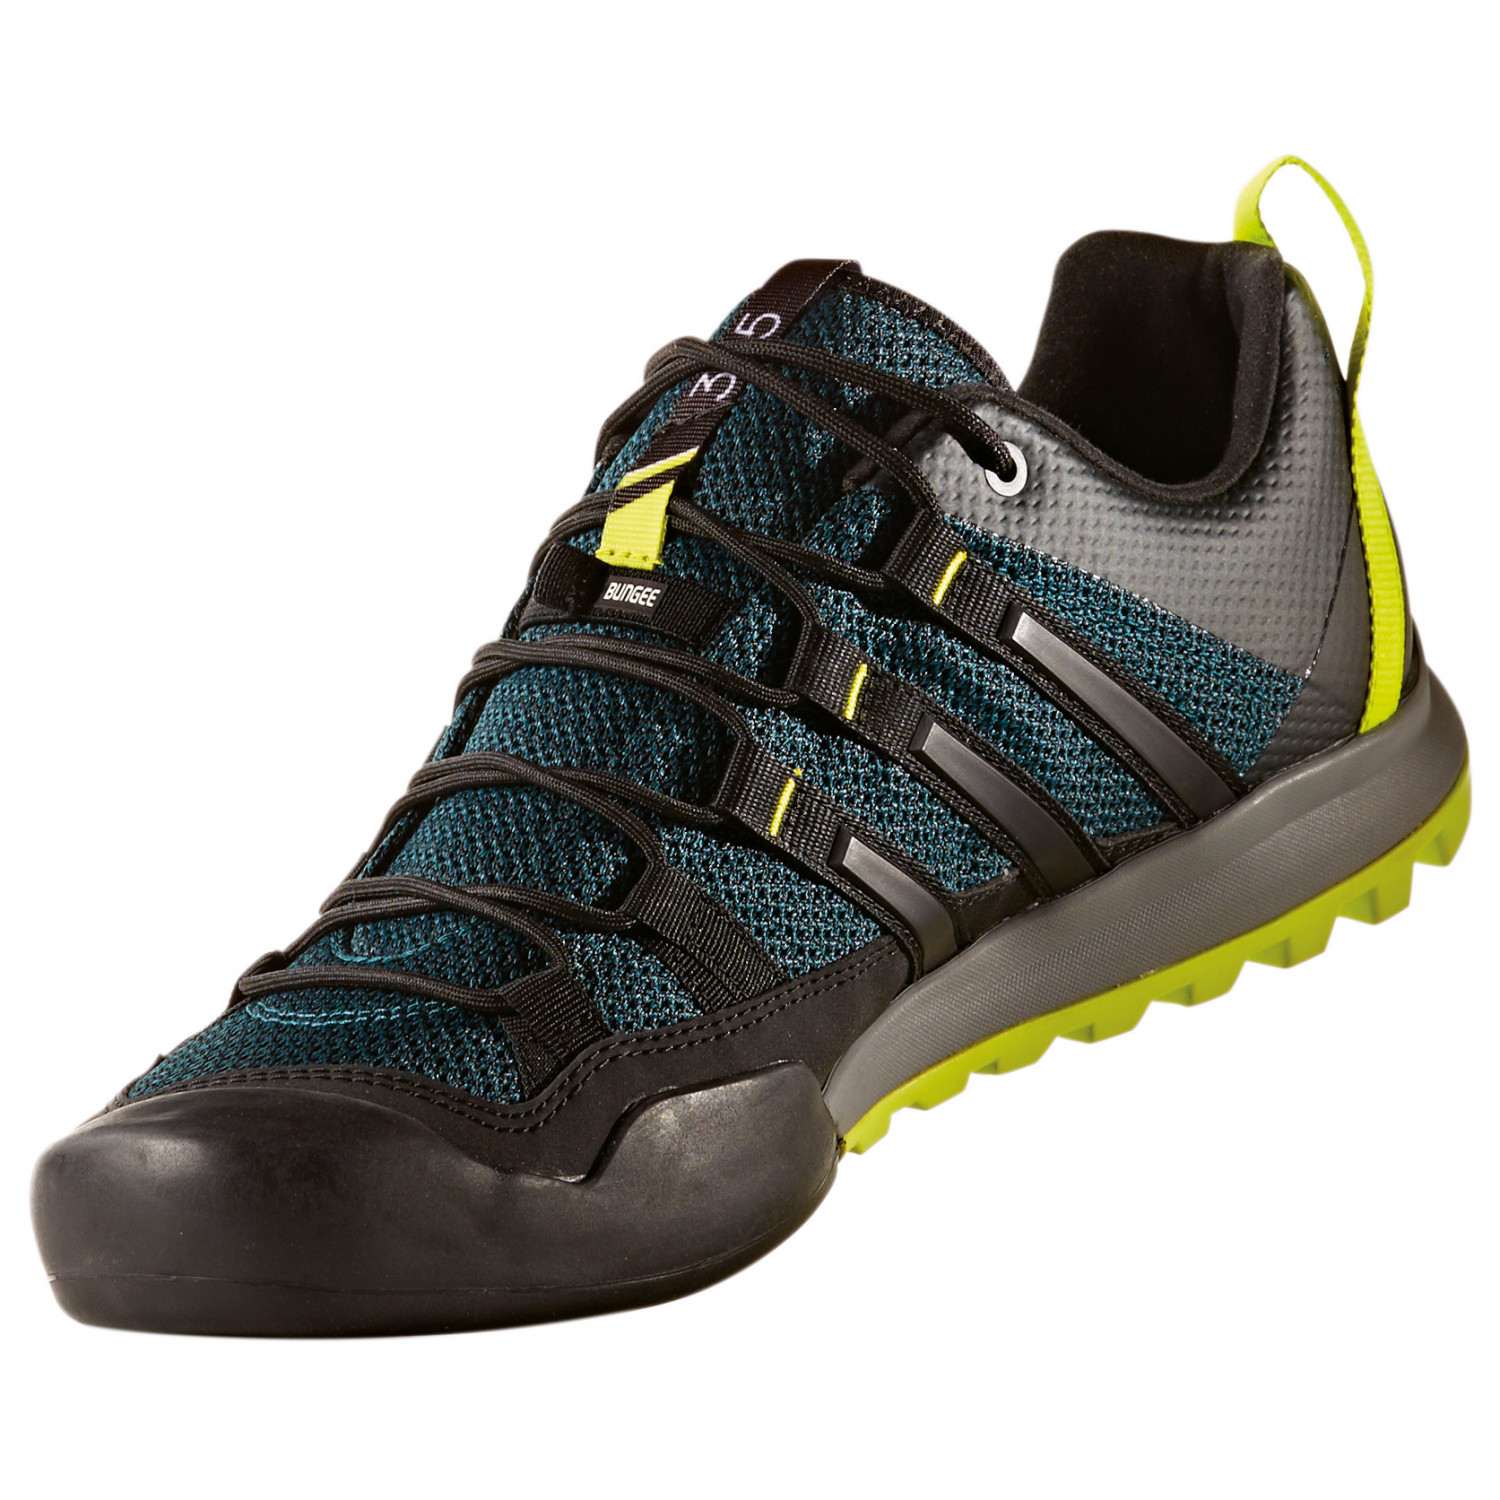 Adidas Trekking Shoes